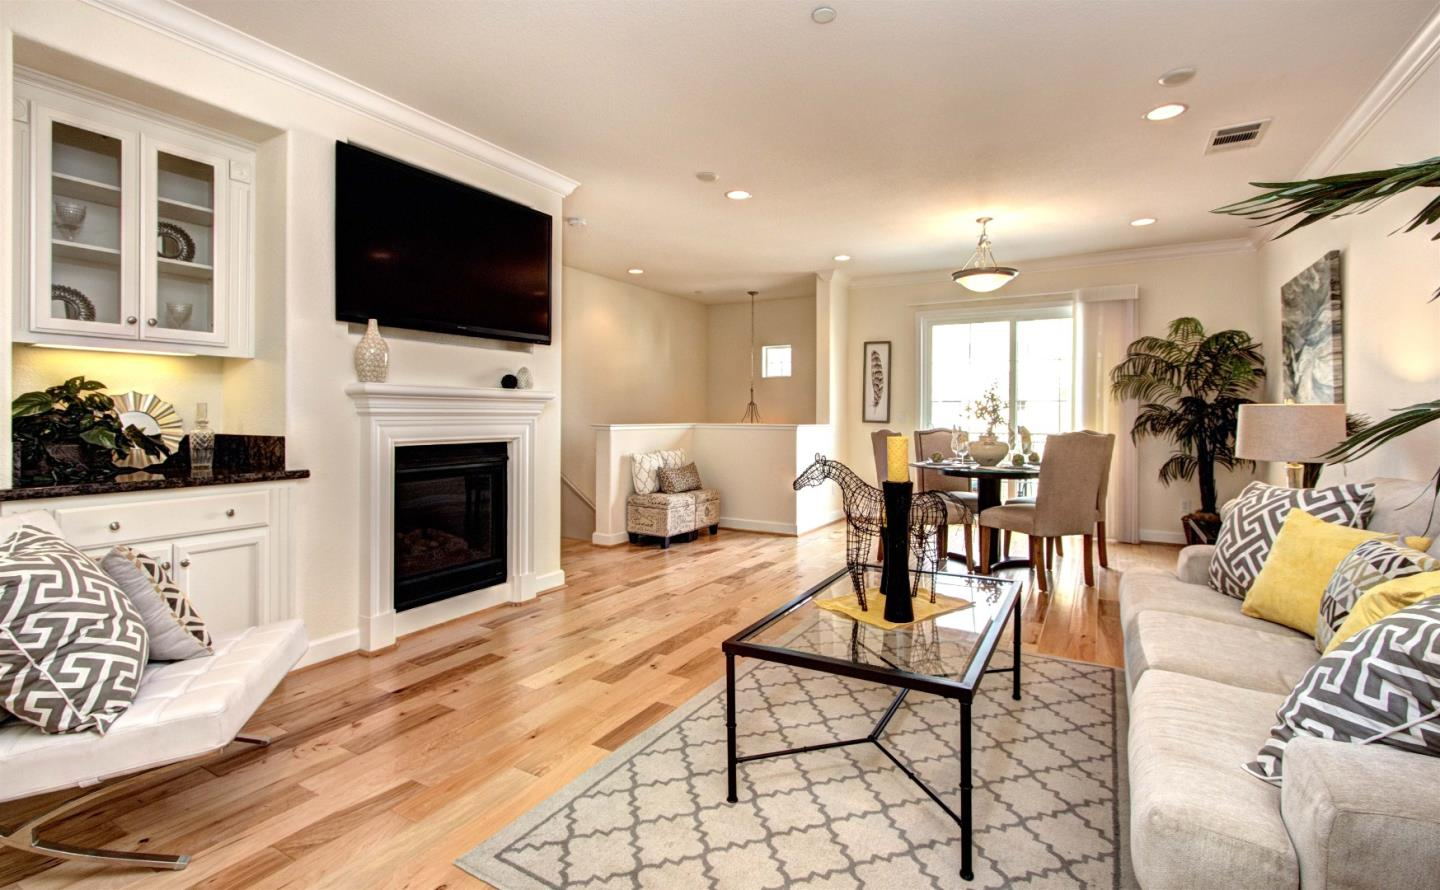 Additional photo for property listing at 205 Hockney Ave  MOUNTAIN VIEW, CALIFORNIA 94041